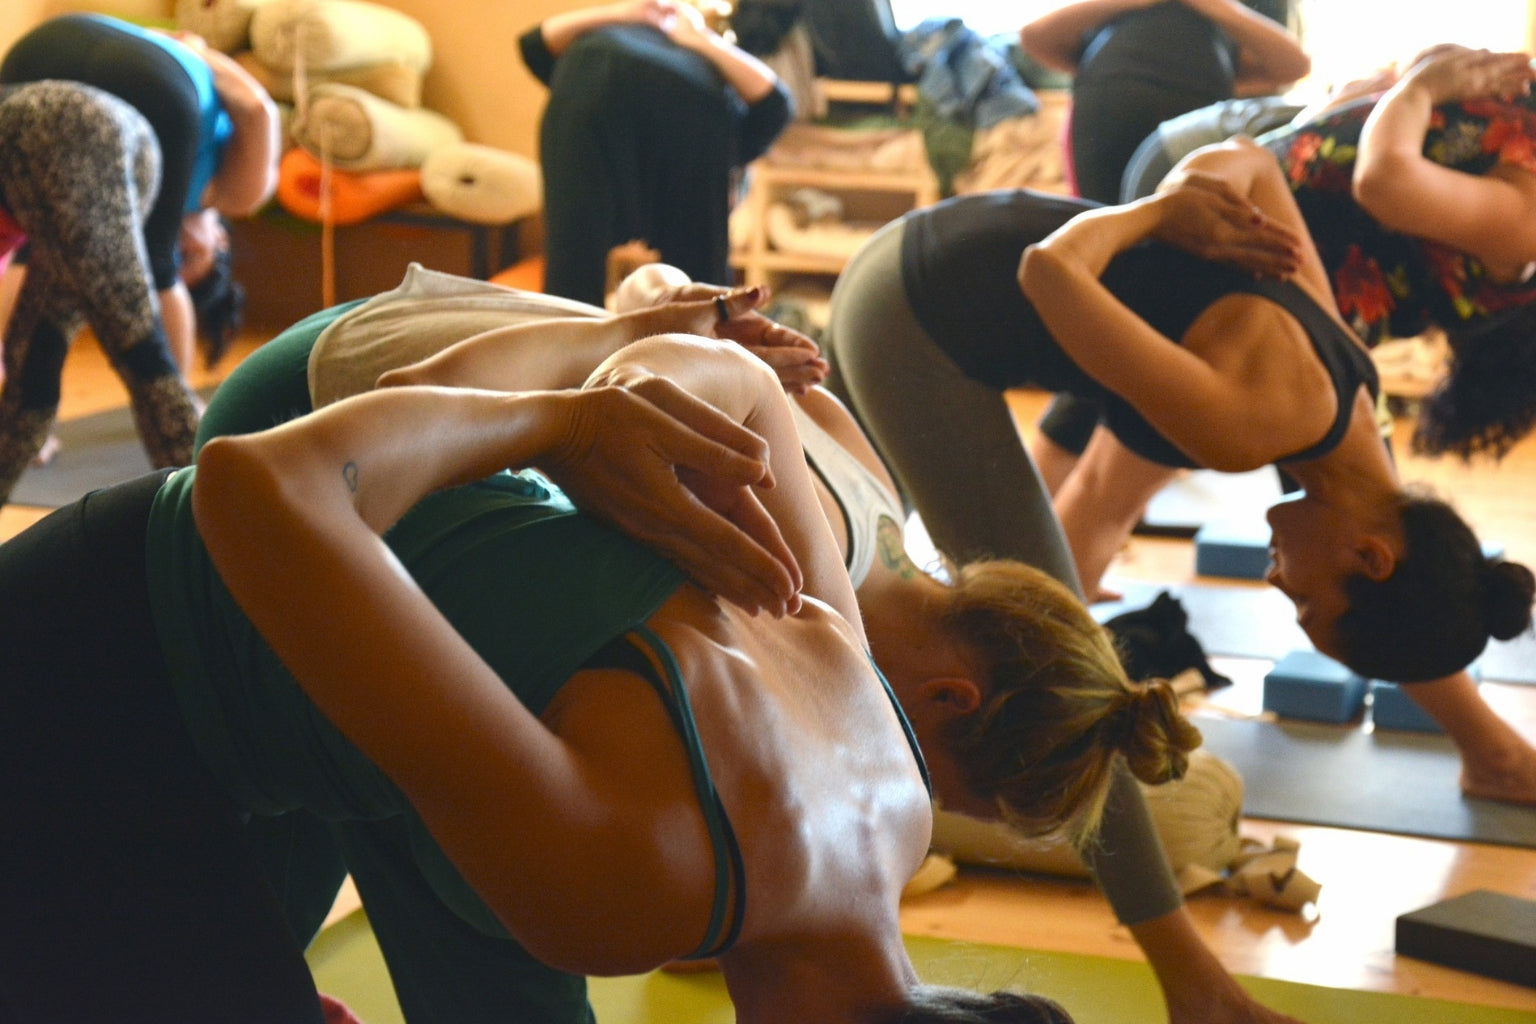 3 Ways to Keep your Focus in a Yoga Class